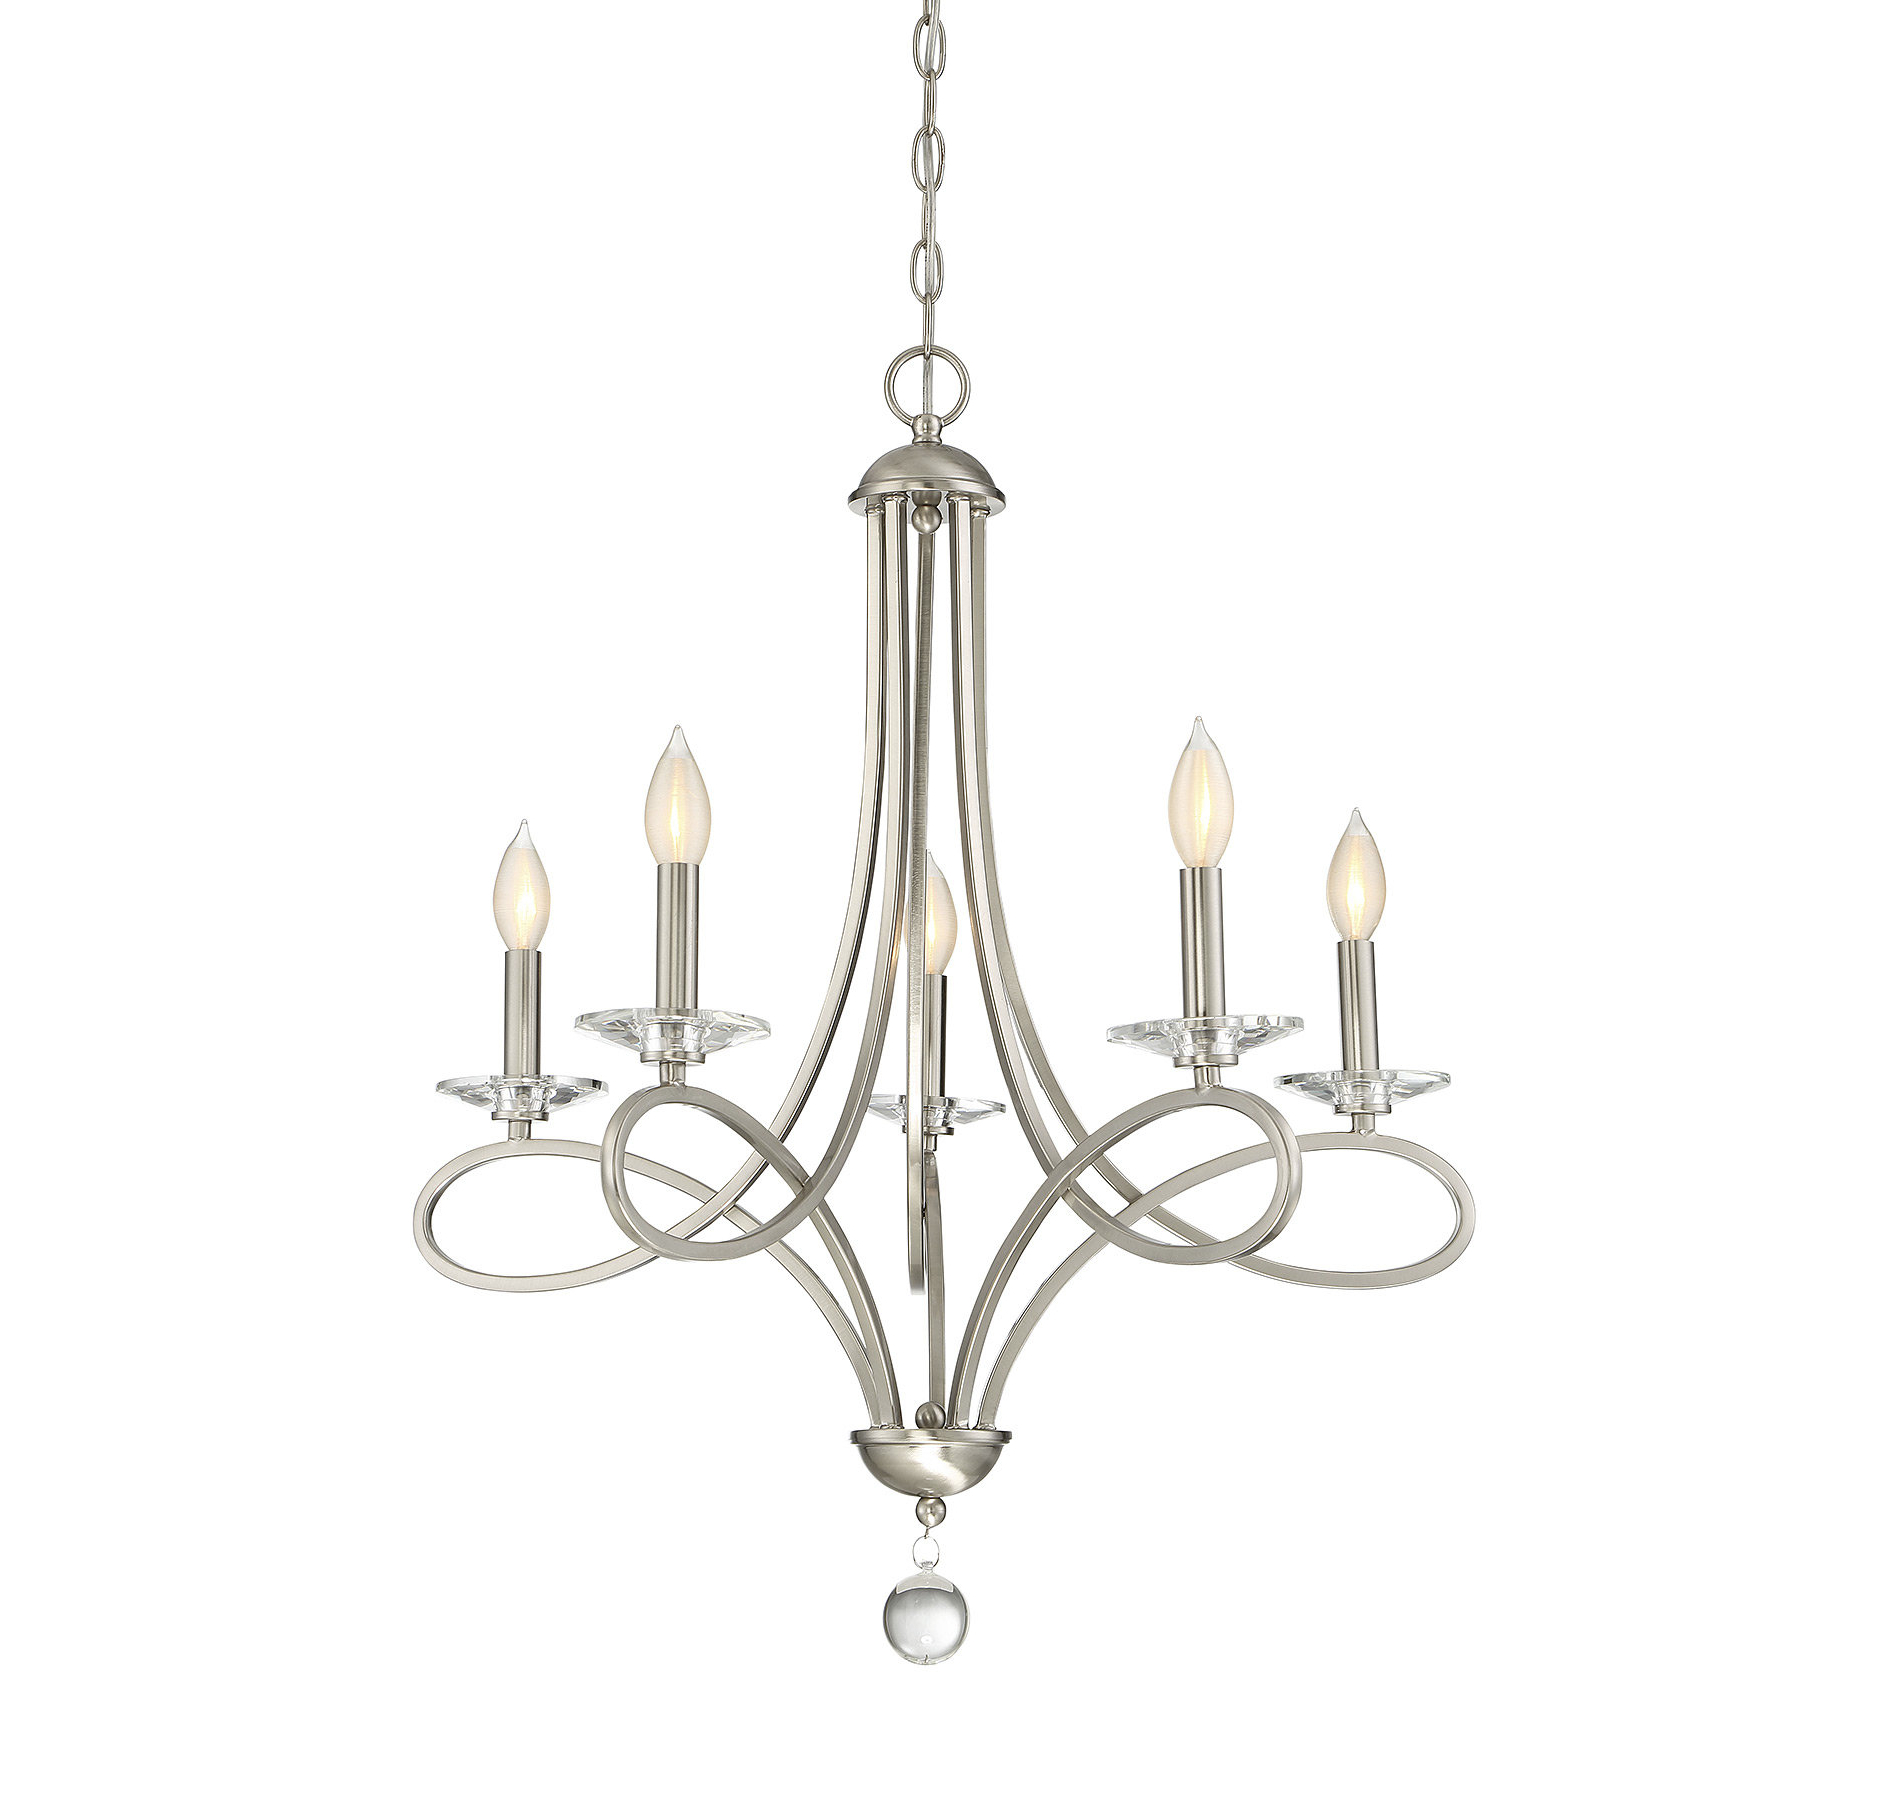 Most Recently Released Gaines 9 Light Candle Style Chandeliers With Regard To Berger 5 Light Candle Style Chandelier (Gallery 17 of 20)